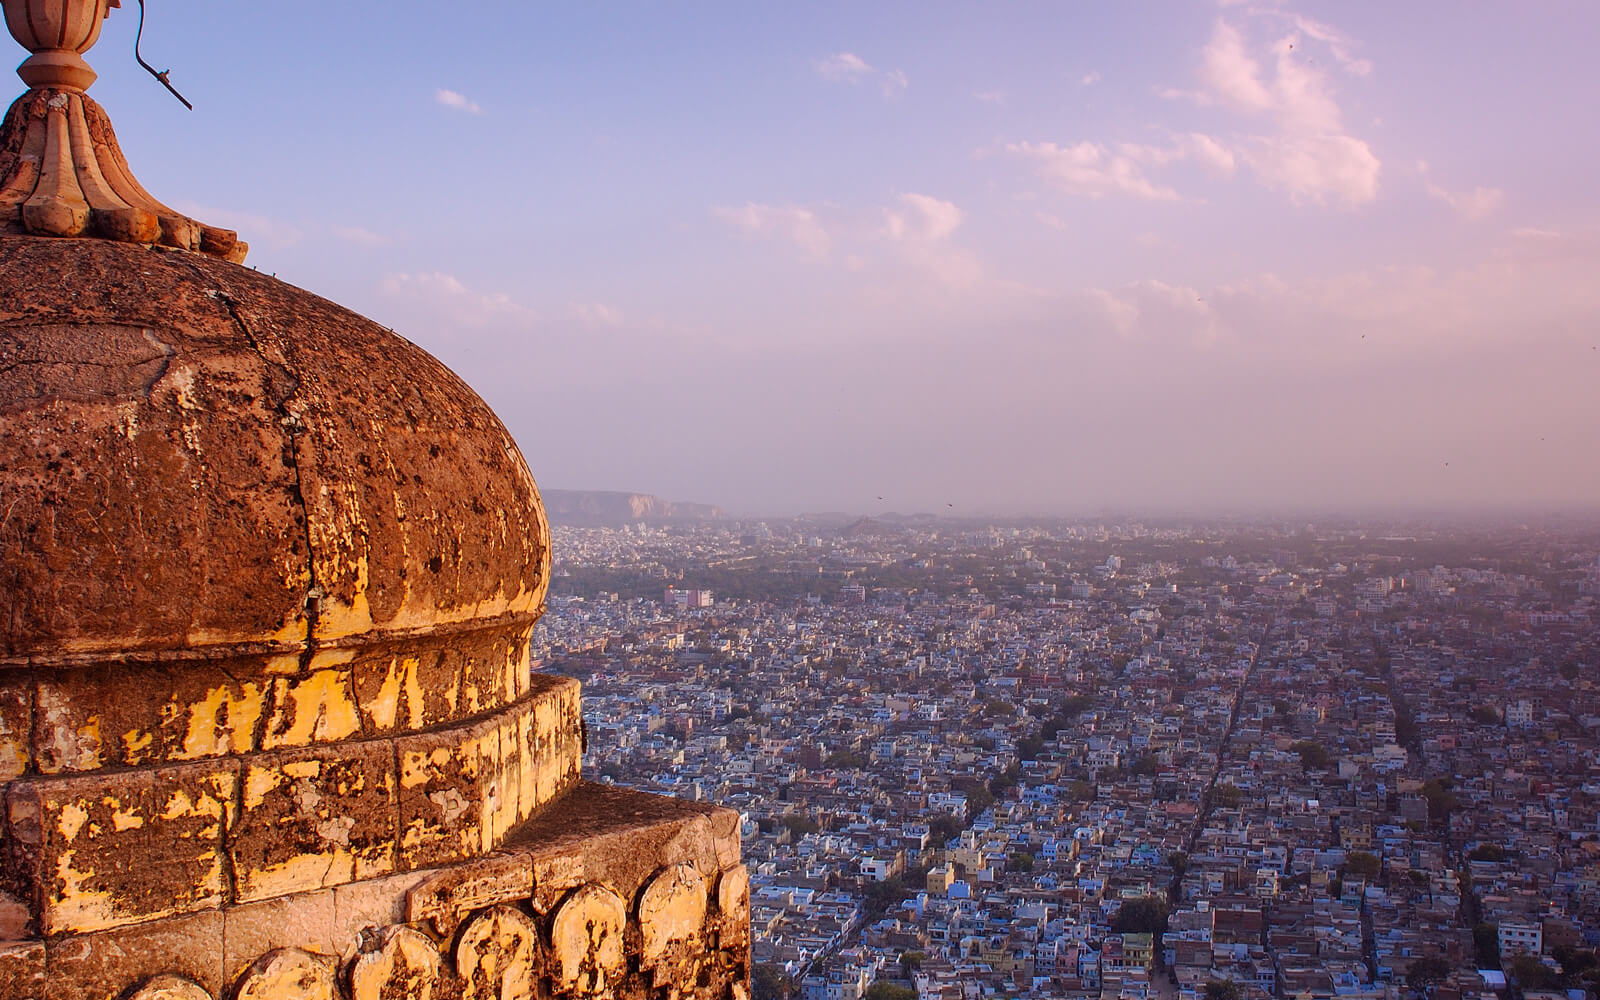 Watching the sunset from Nahargarh Fort is one of the obligatory things to do in Jaipur, India